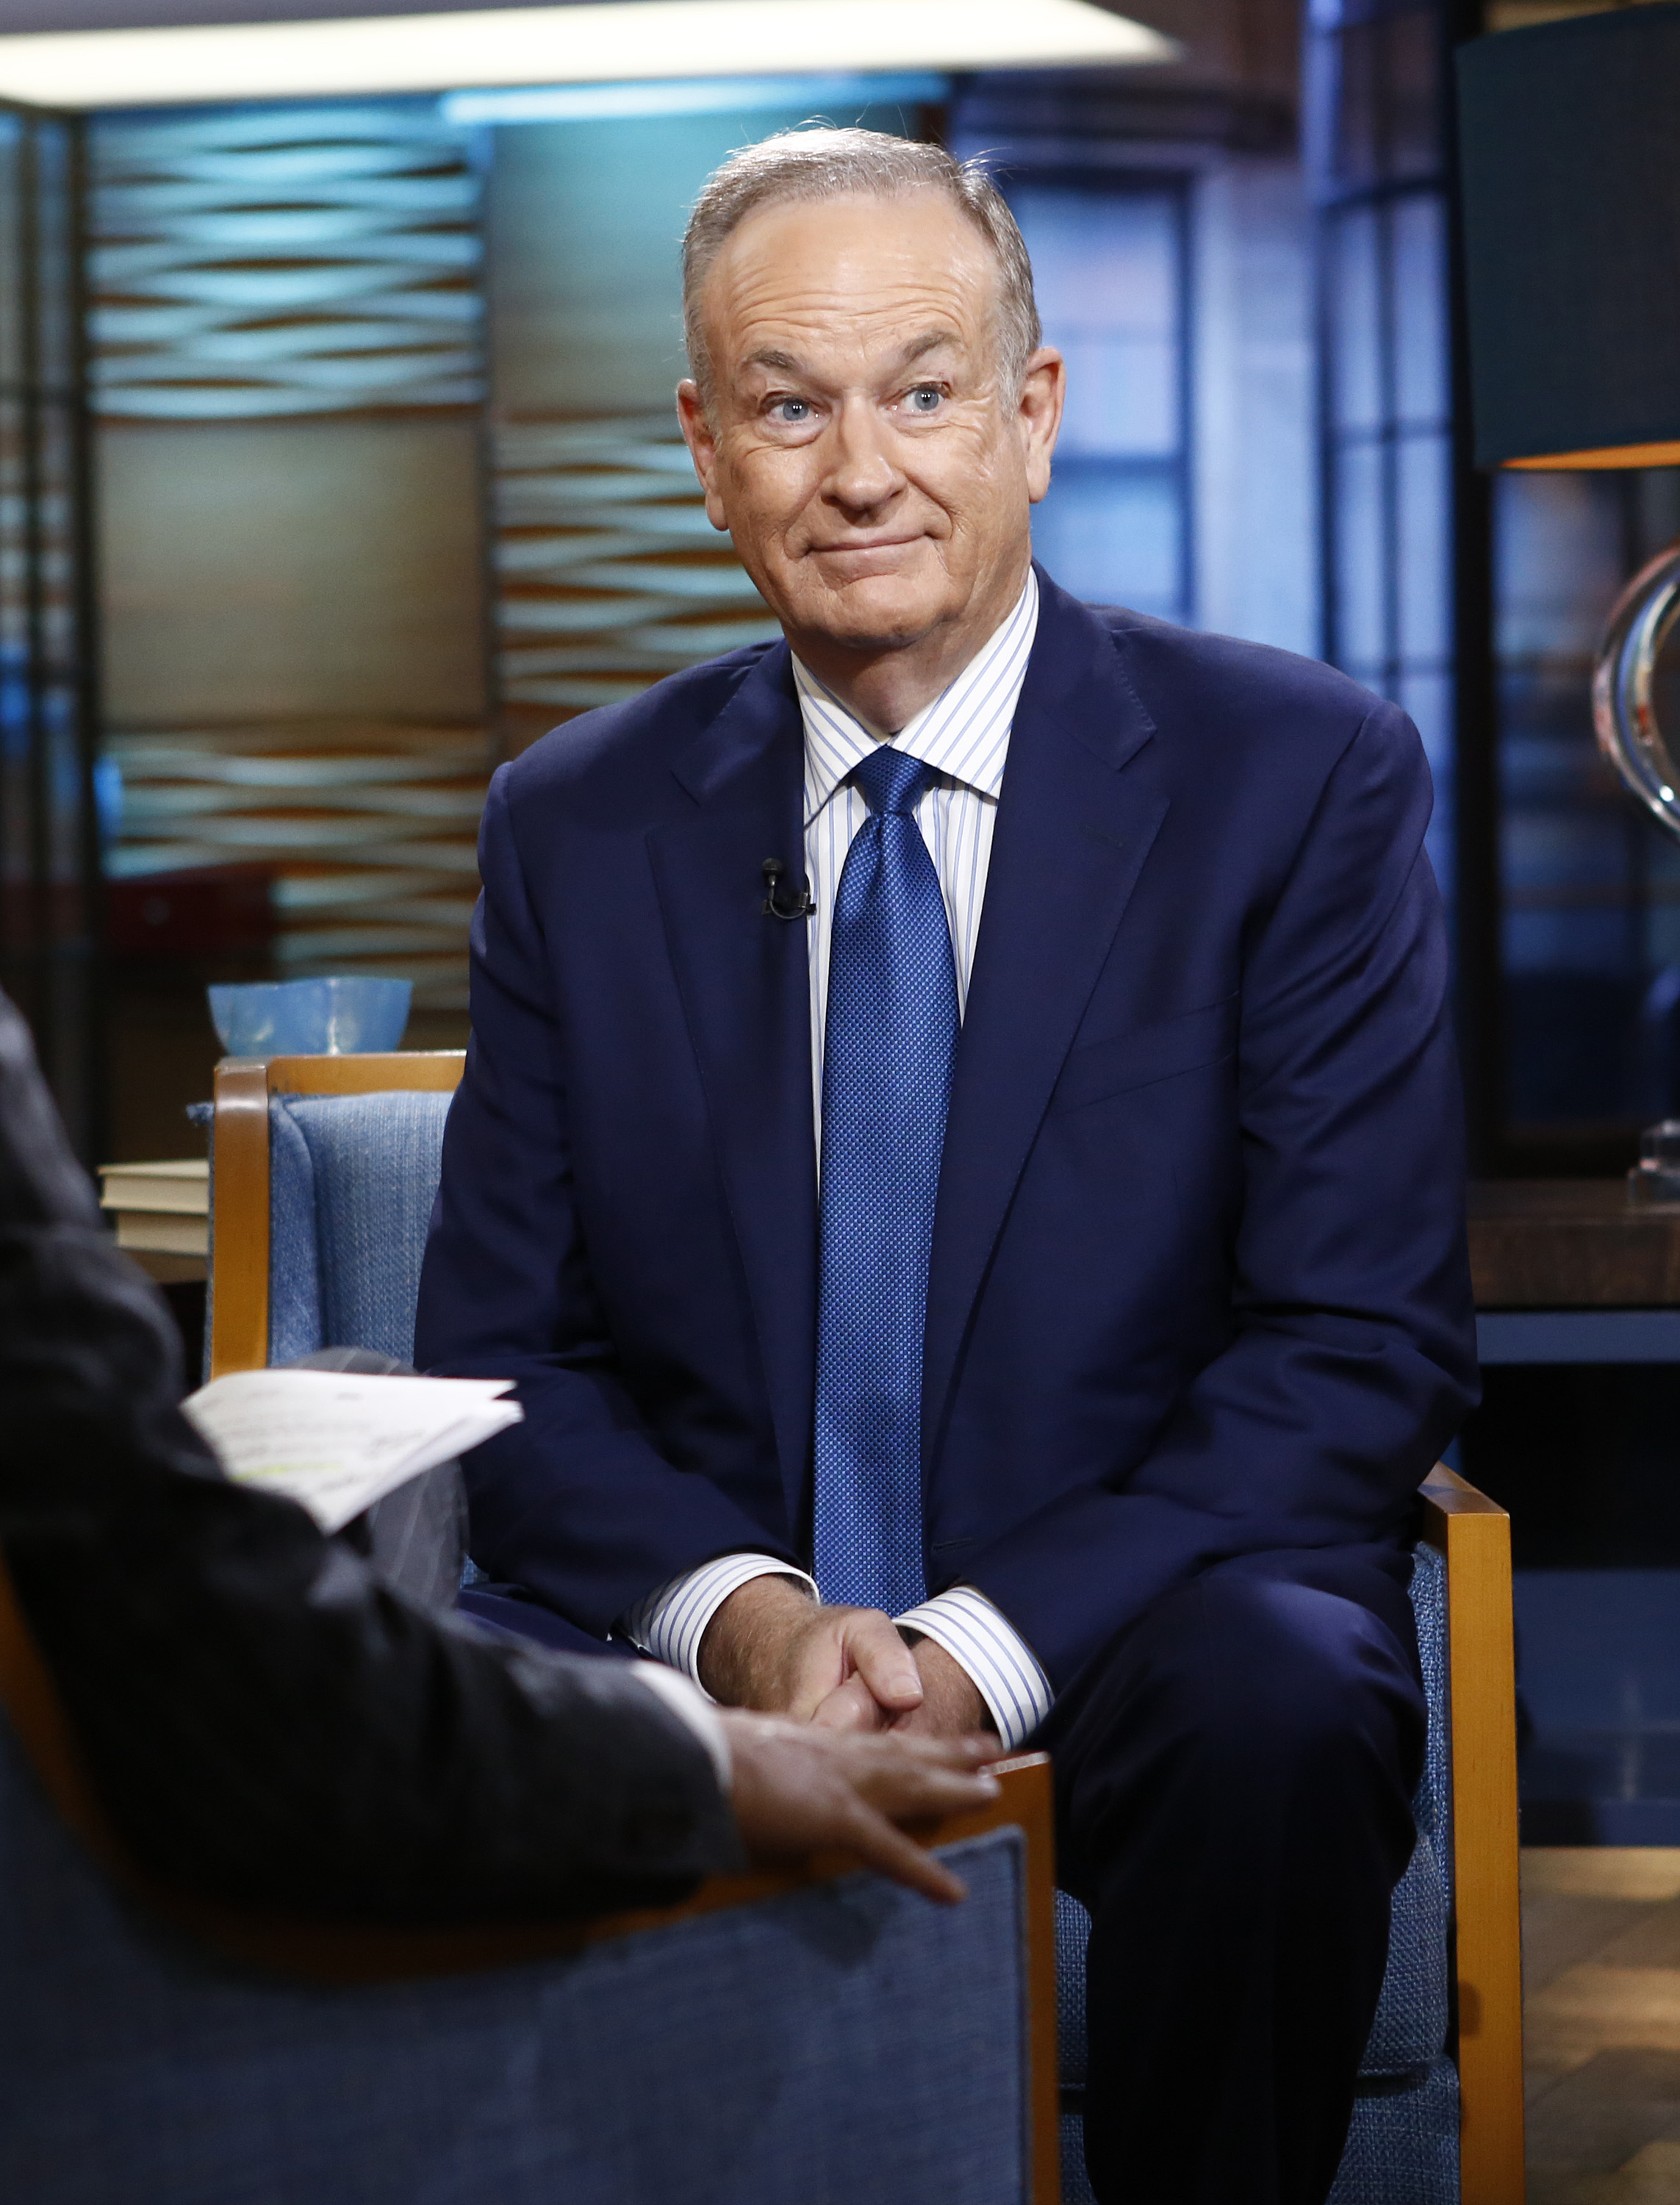 Go Ahead and Call Bill O'Reilly What He Is: A Pathological Liar